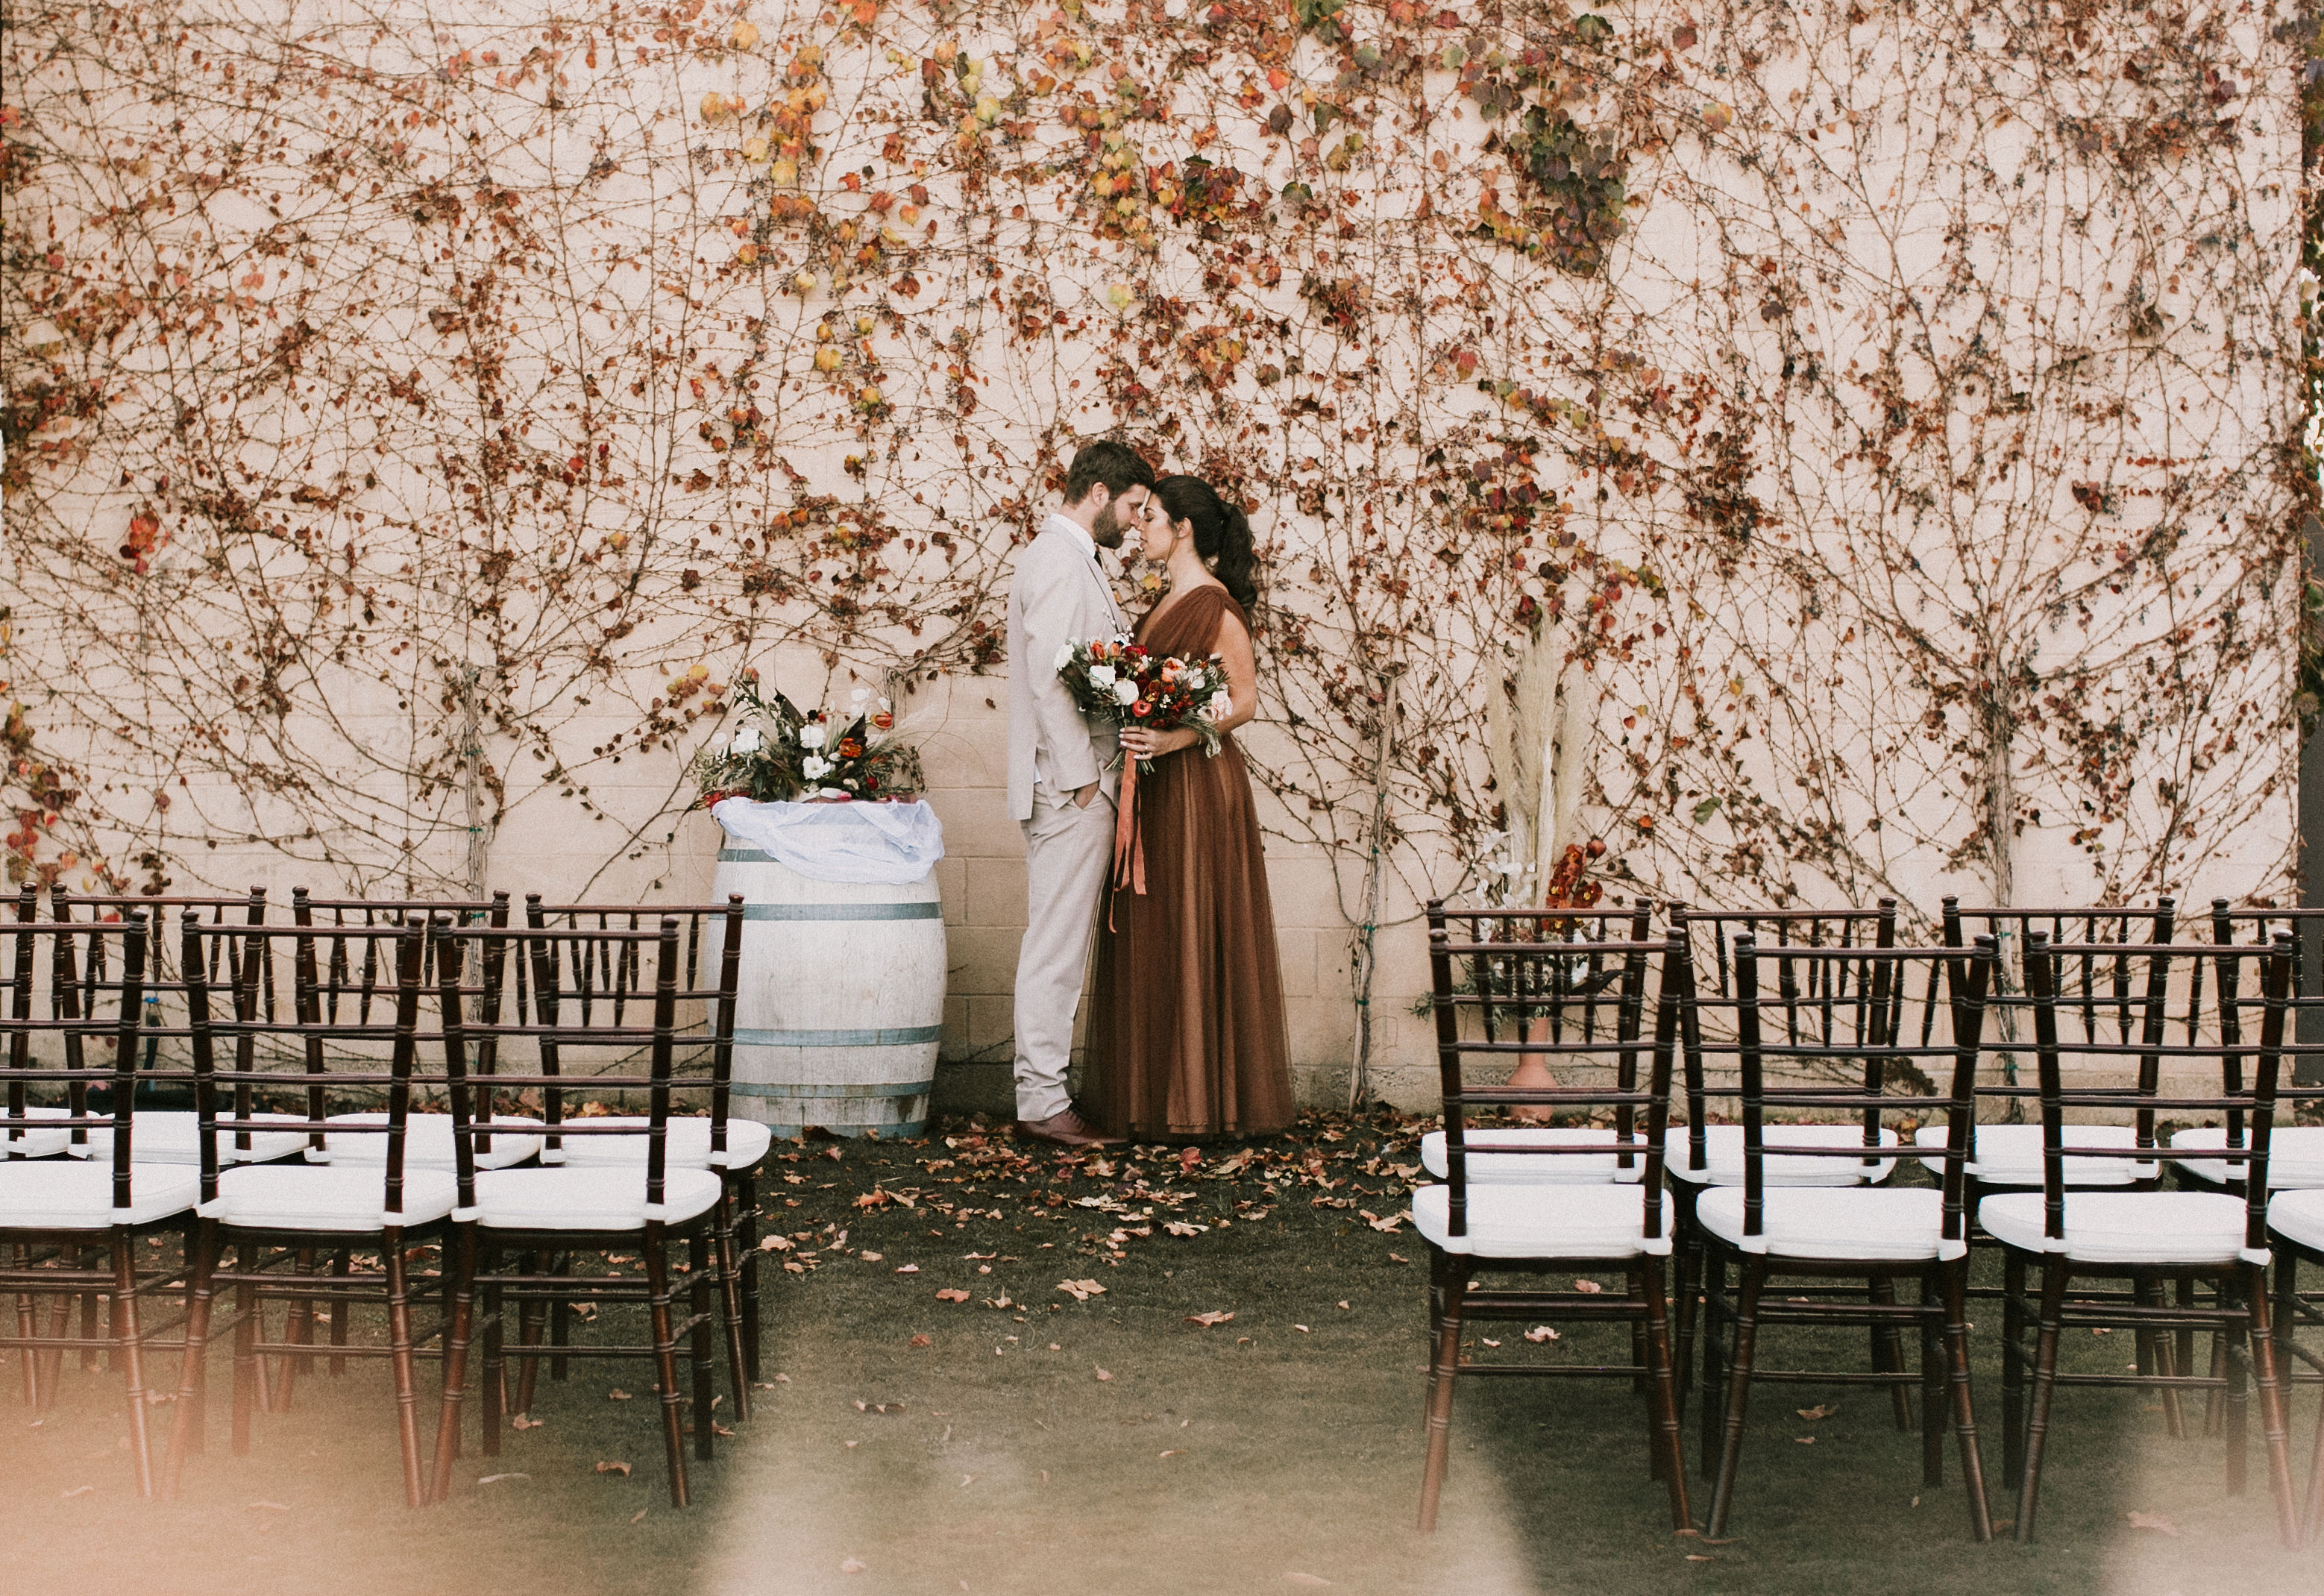 Everything You Love About Autumn in a Wedding